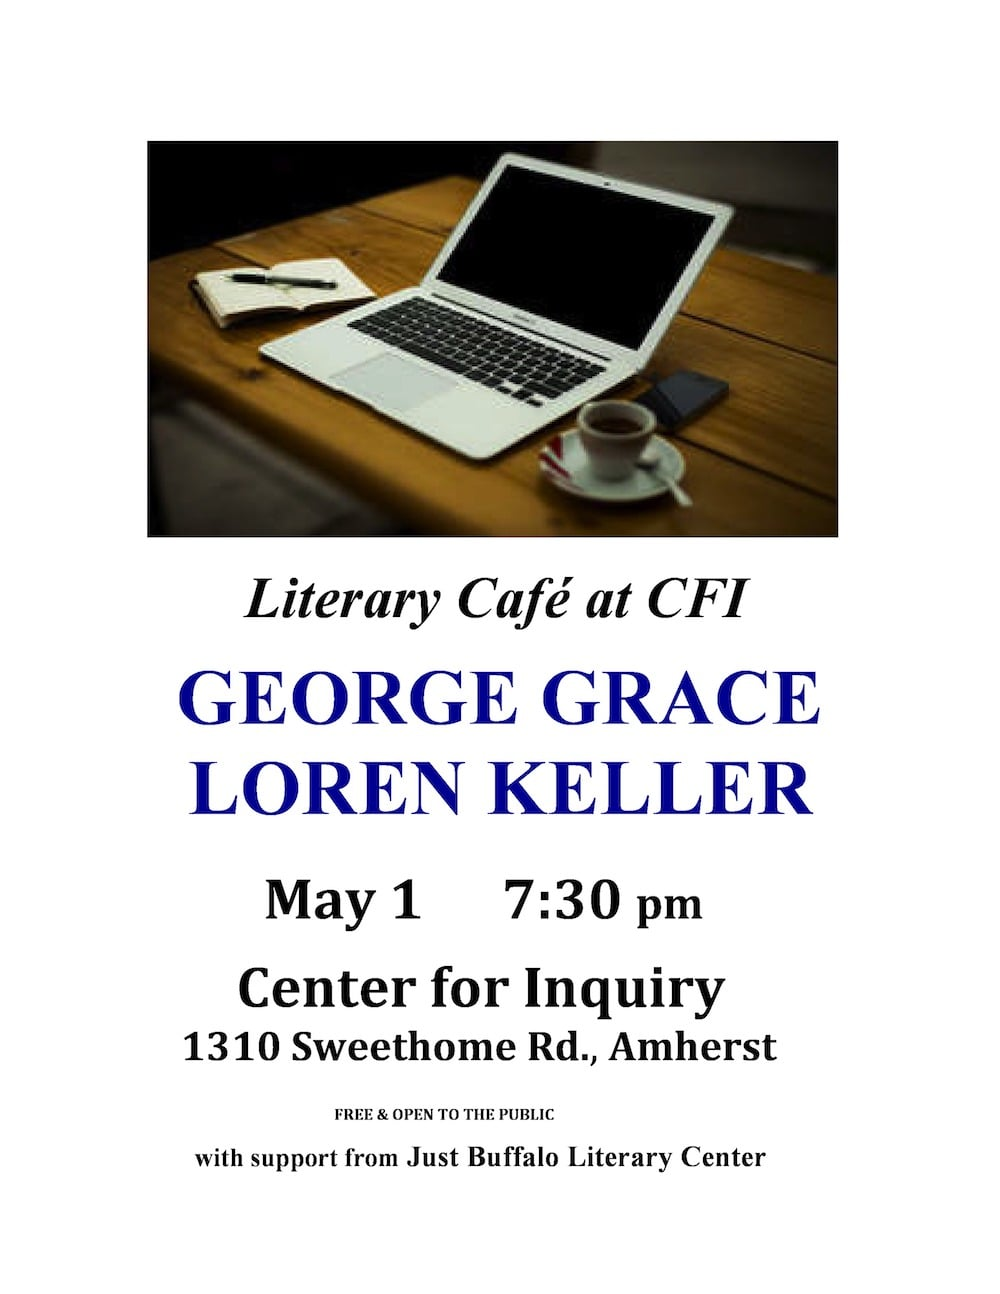 Literary Cafe at CFI with George Grace and Loren Keller